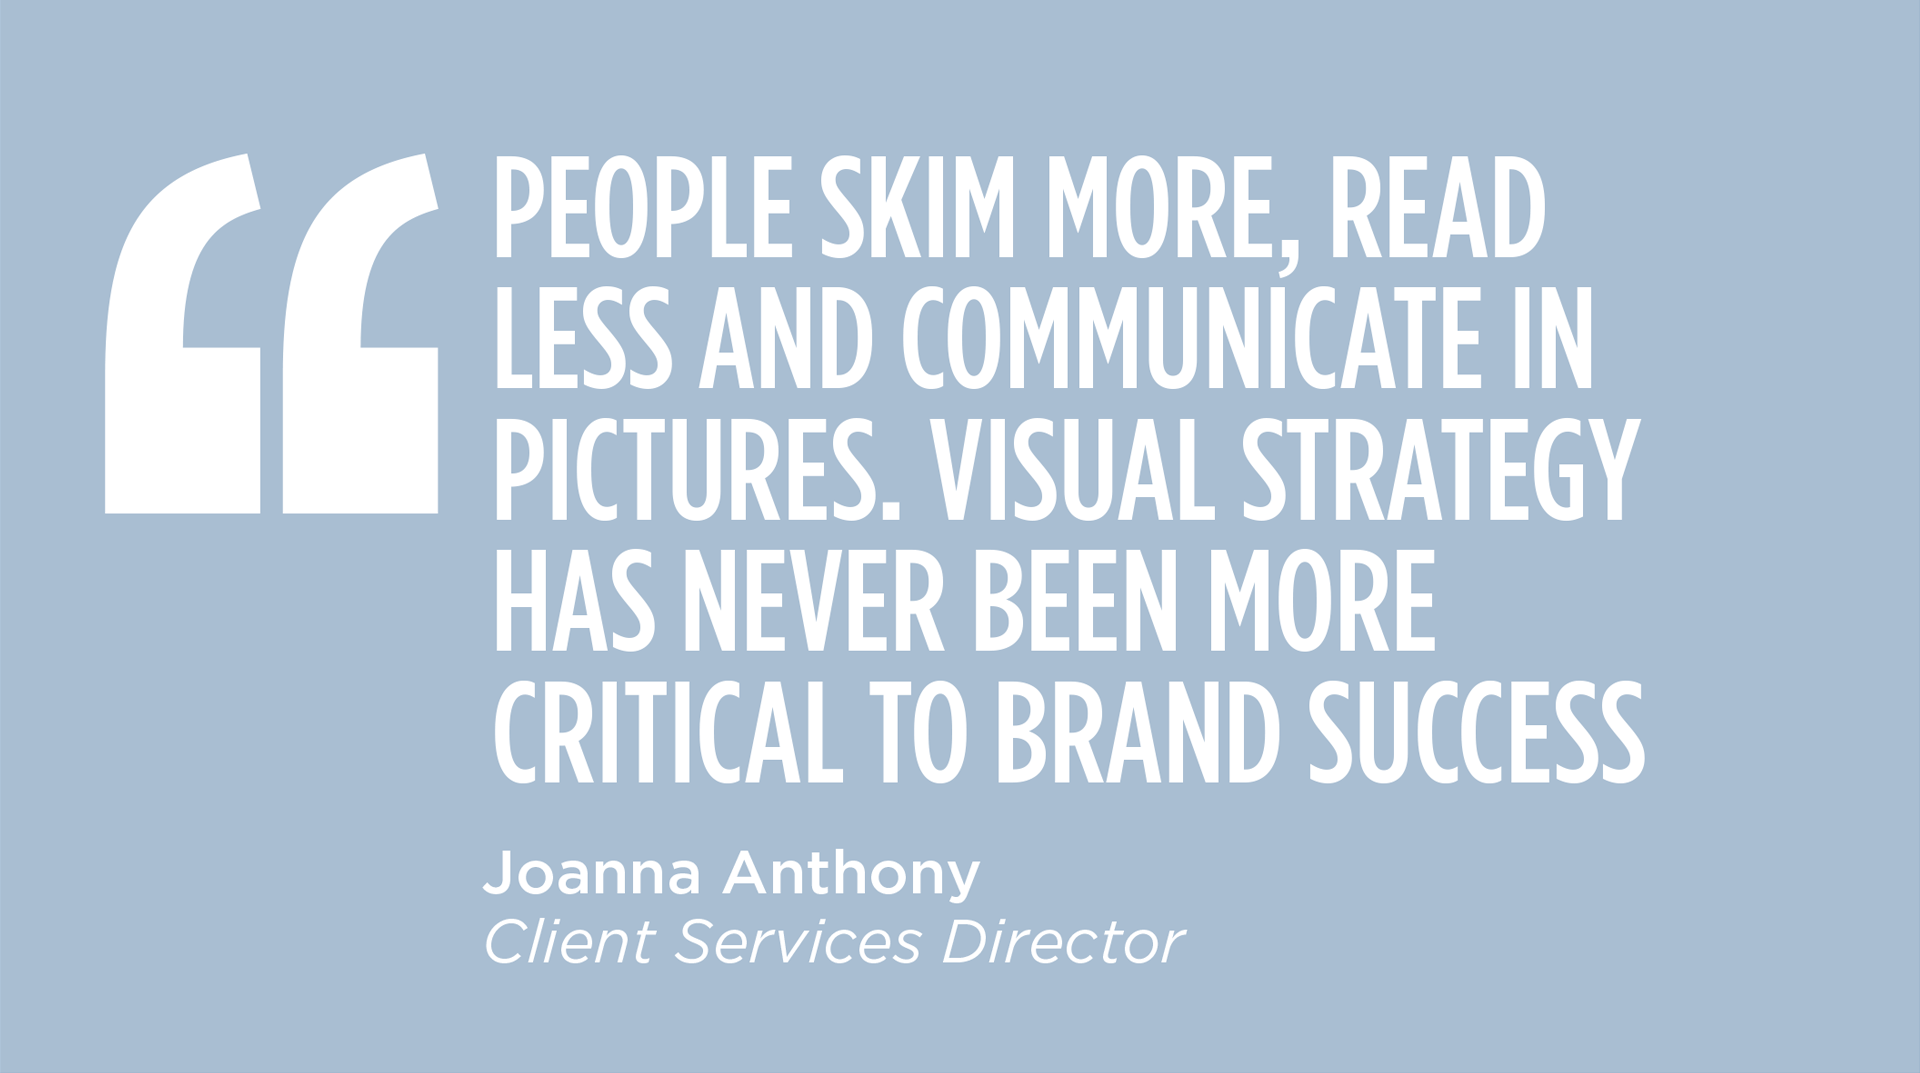 PEOPLE SKIM MORE, READ LESS AND COMMUNICATE IN PICTURES. VISUAL STRATEGY HAS NEVER BEEN MORE CRITICAL TO BRAND SUCCESS - Joanna Anthony, Client Services Director